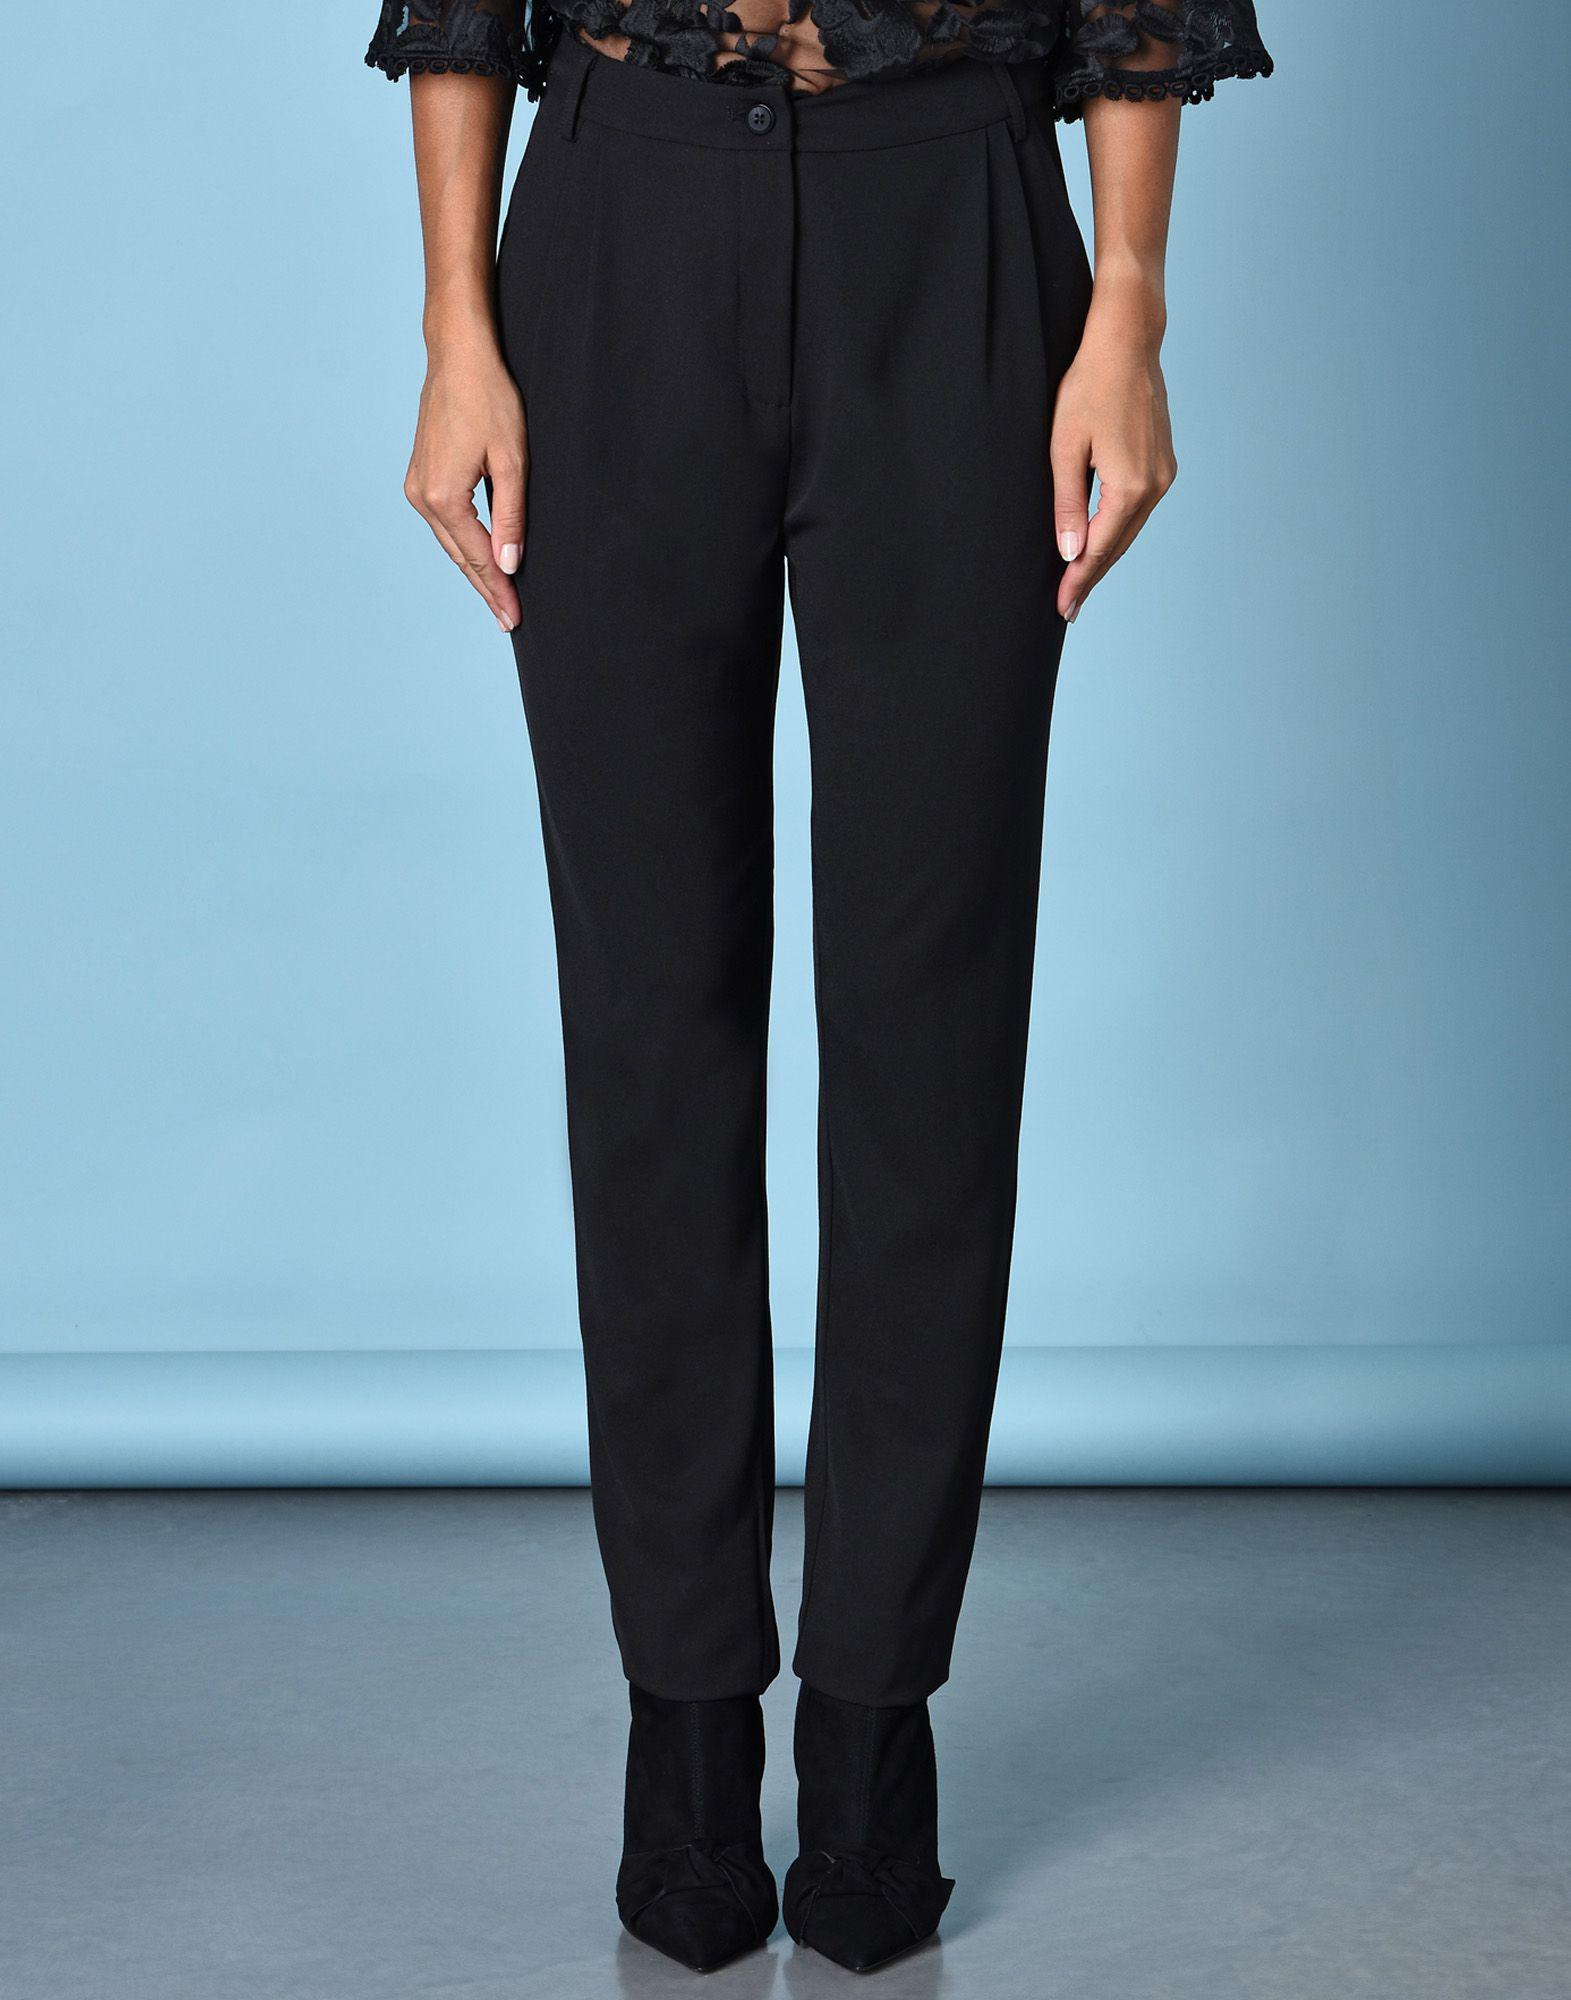 TROUSERS - Casual trousers Jolie By Edward Spiers 03Hg6TqY1